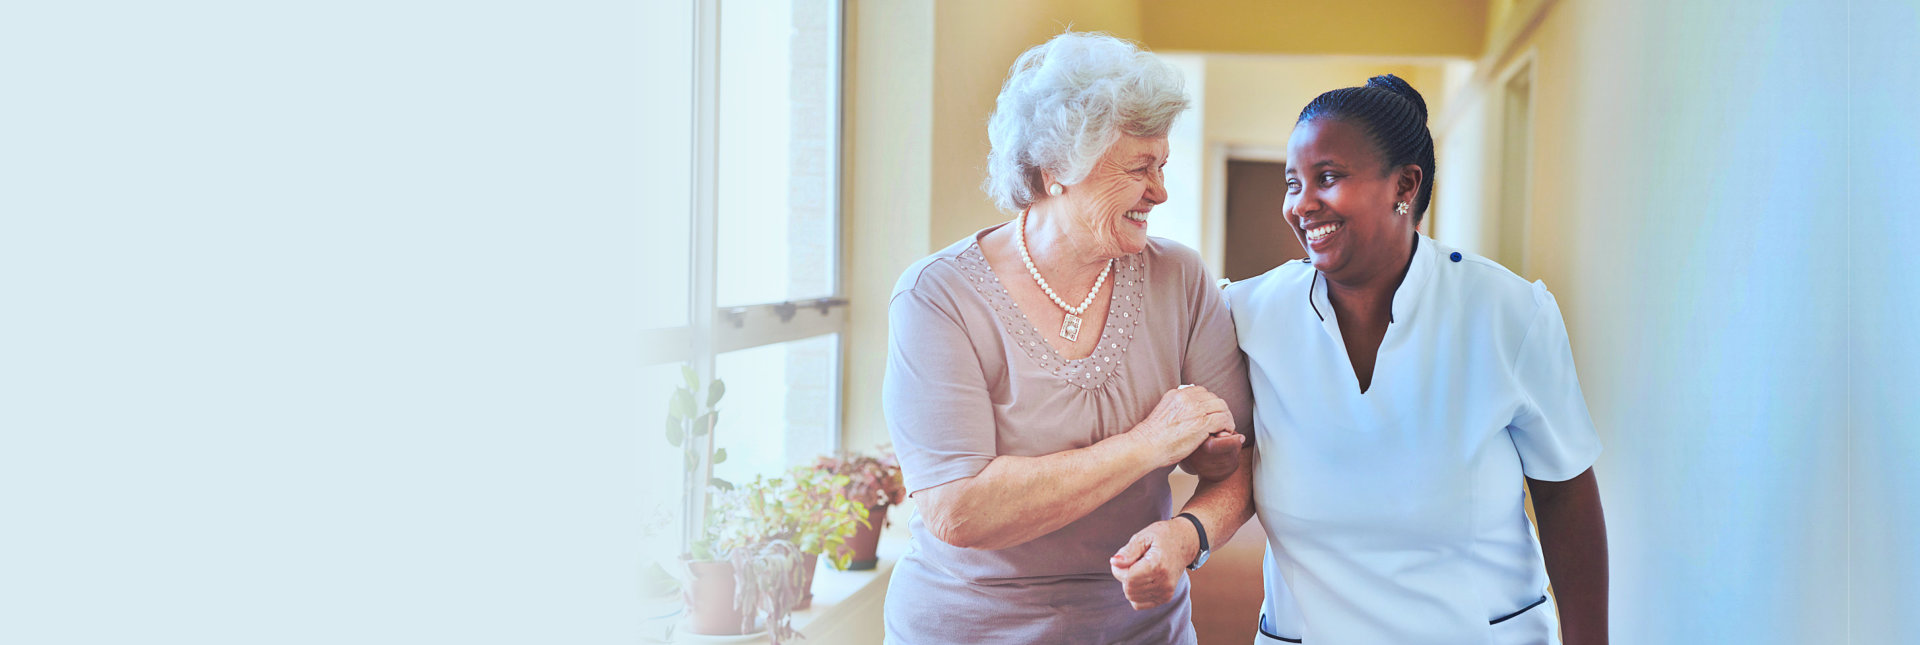 caregiver and elderly woman happily talking